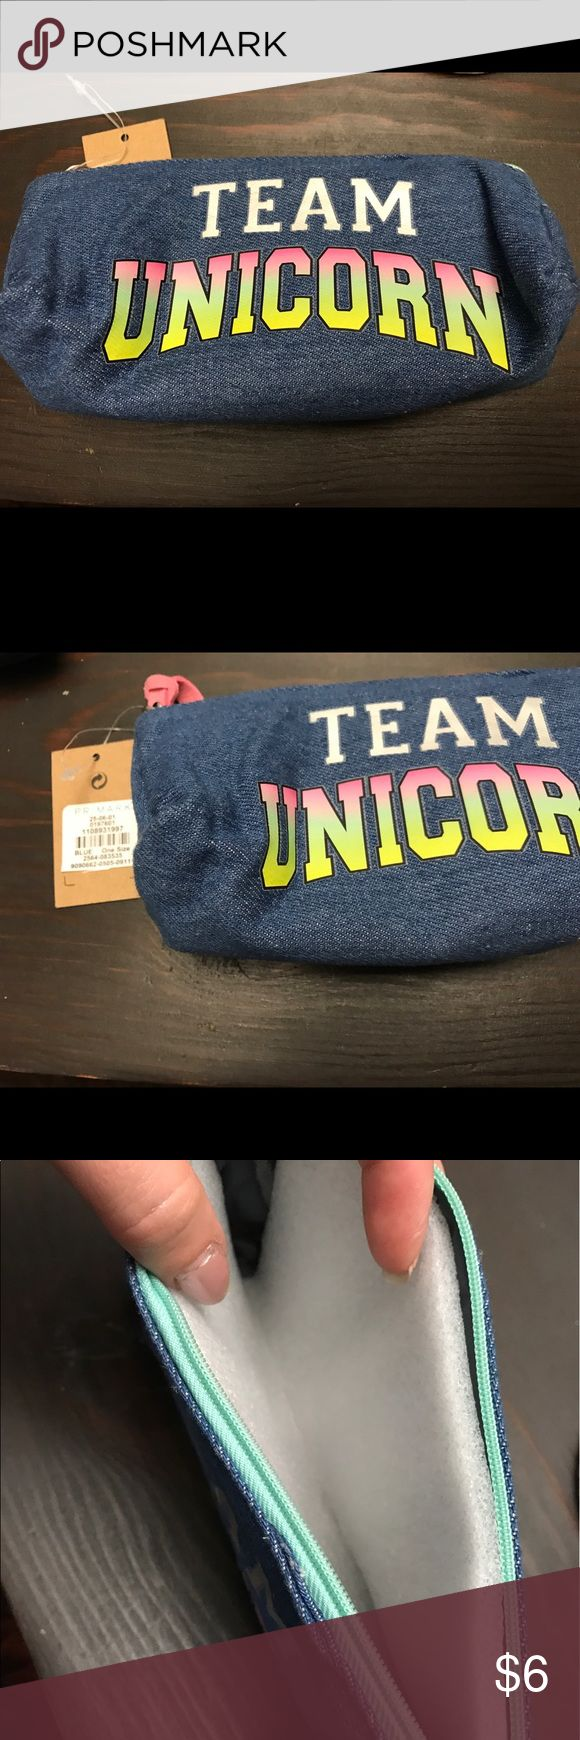 NWT team unicorn makeup bag New with Tags - Team Unicorn 🦄 Makeup bag. Purchased from Primark. Dimensions 7inch long 2 in wide. primark Bags